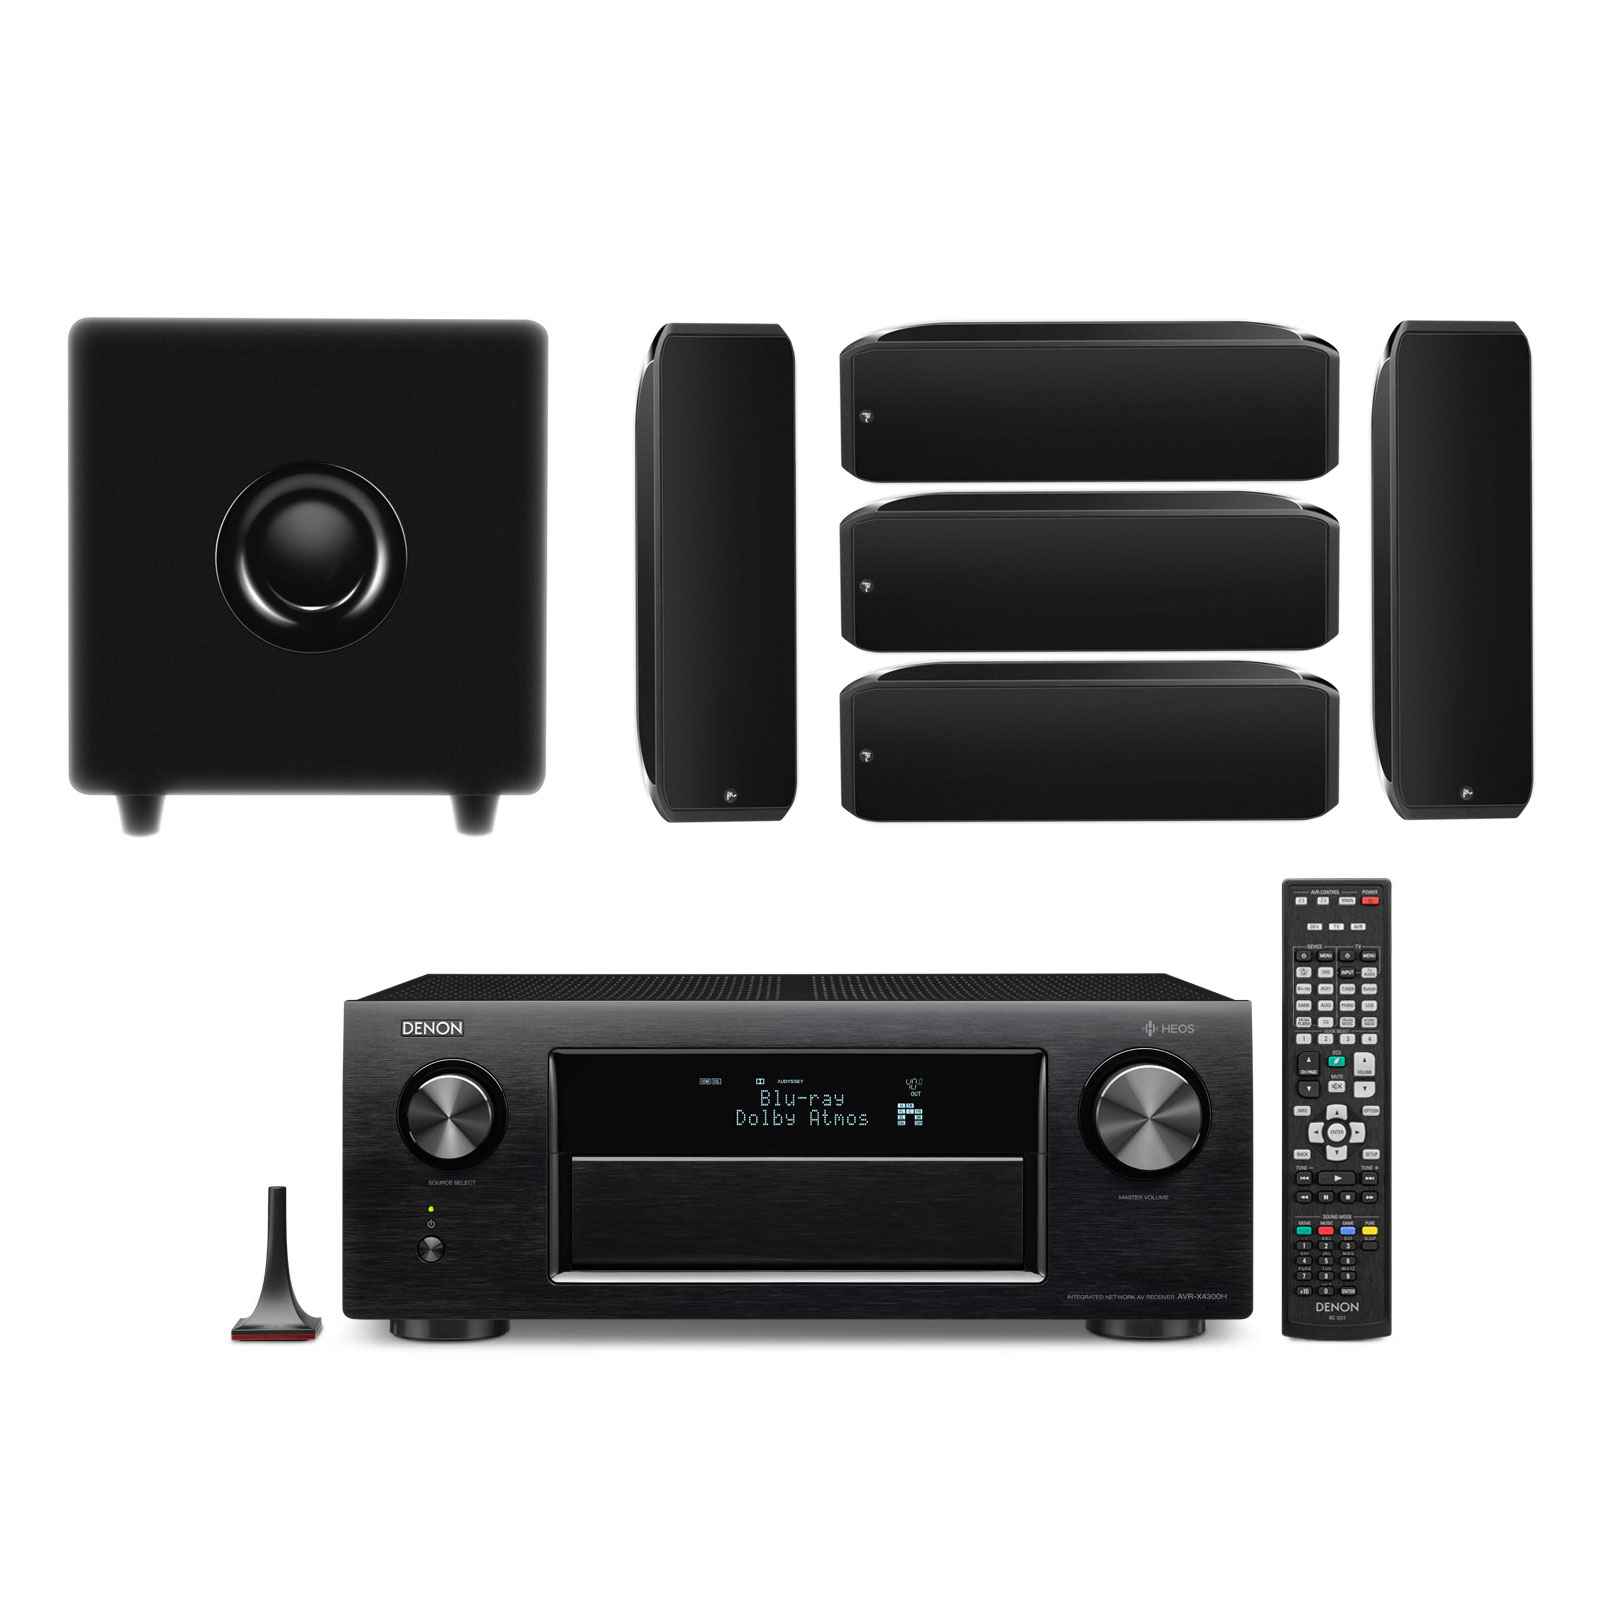 Denon avr x4300h noir focal sib cub xl pack ensemble home cin ma de - Ensemble tv home cinema ...